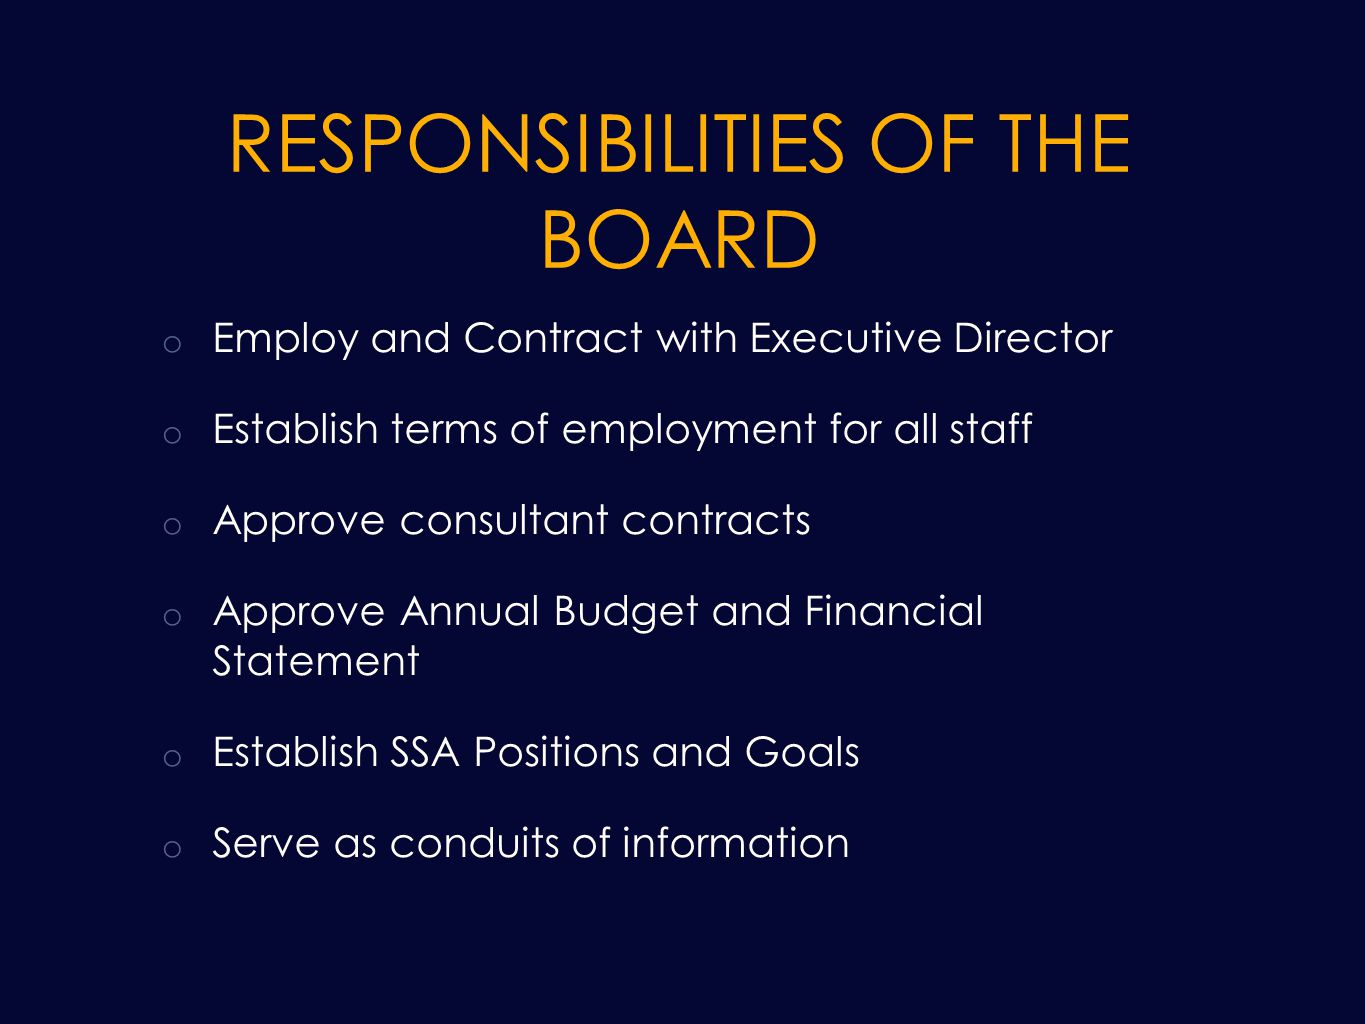 RESPONSIBILITIES OF THE BOARD o Employ and Contract with Executive Director o Establish terms of employment for all staff o Approve consultant contracts o Approve Annual Budget and Financial Statement o Establish SSA Positions and Goals o Serve as conduits of information